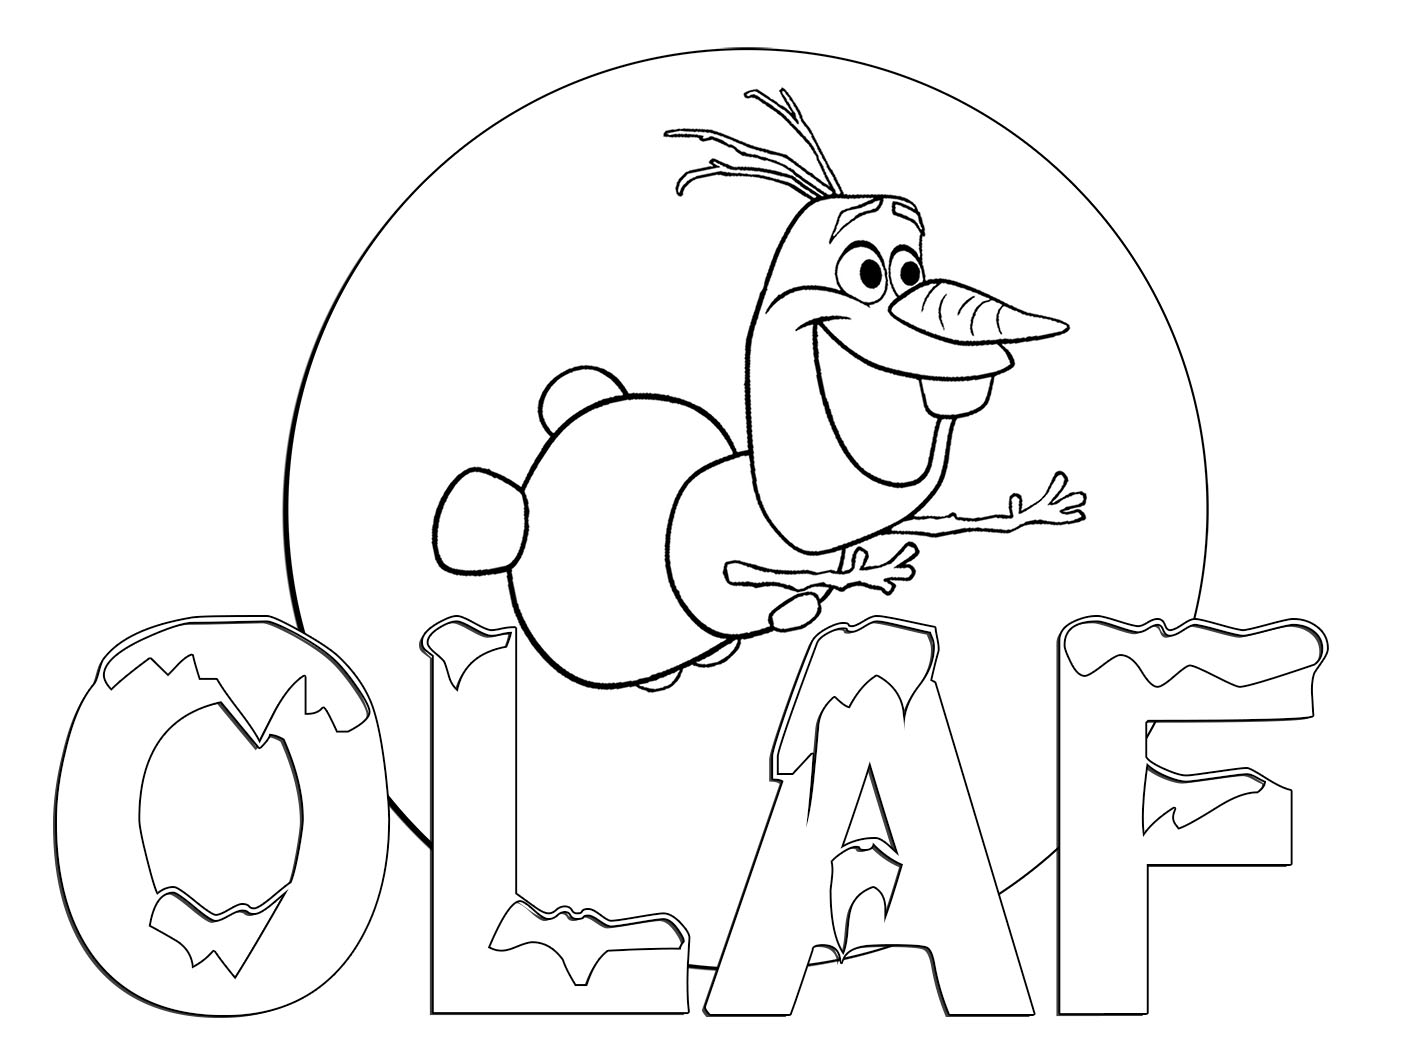 frozen colouring in pictures frozen 2 coloring pages coloring home frozen pictures colouring in